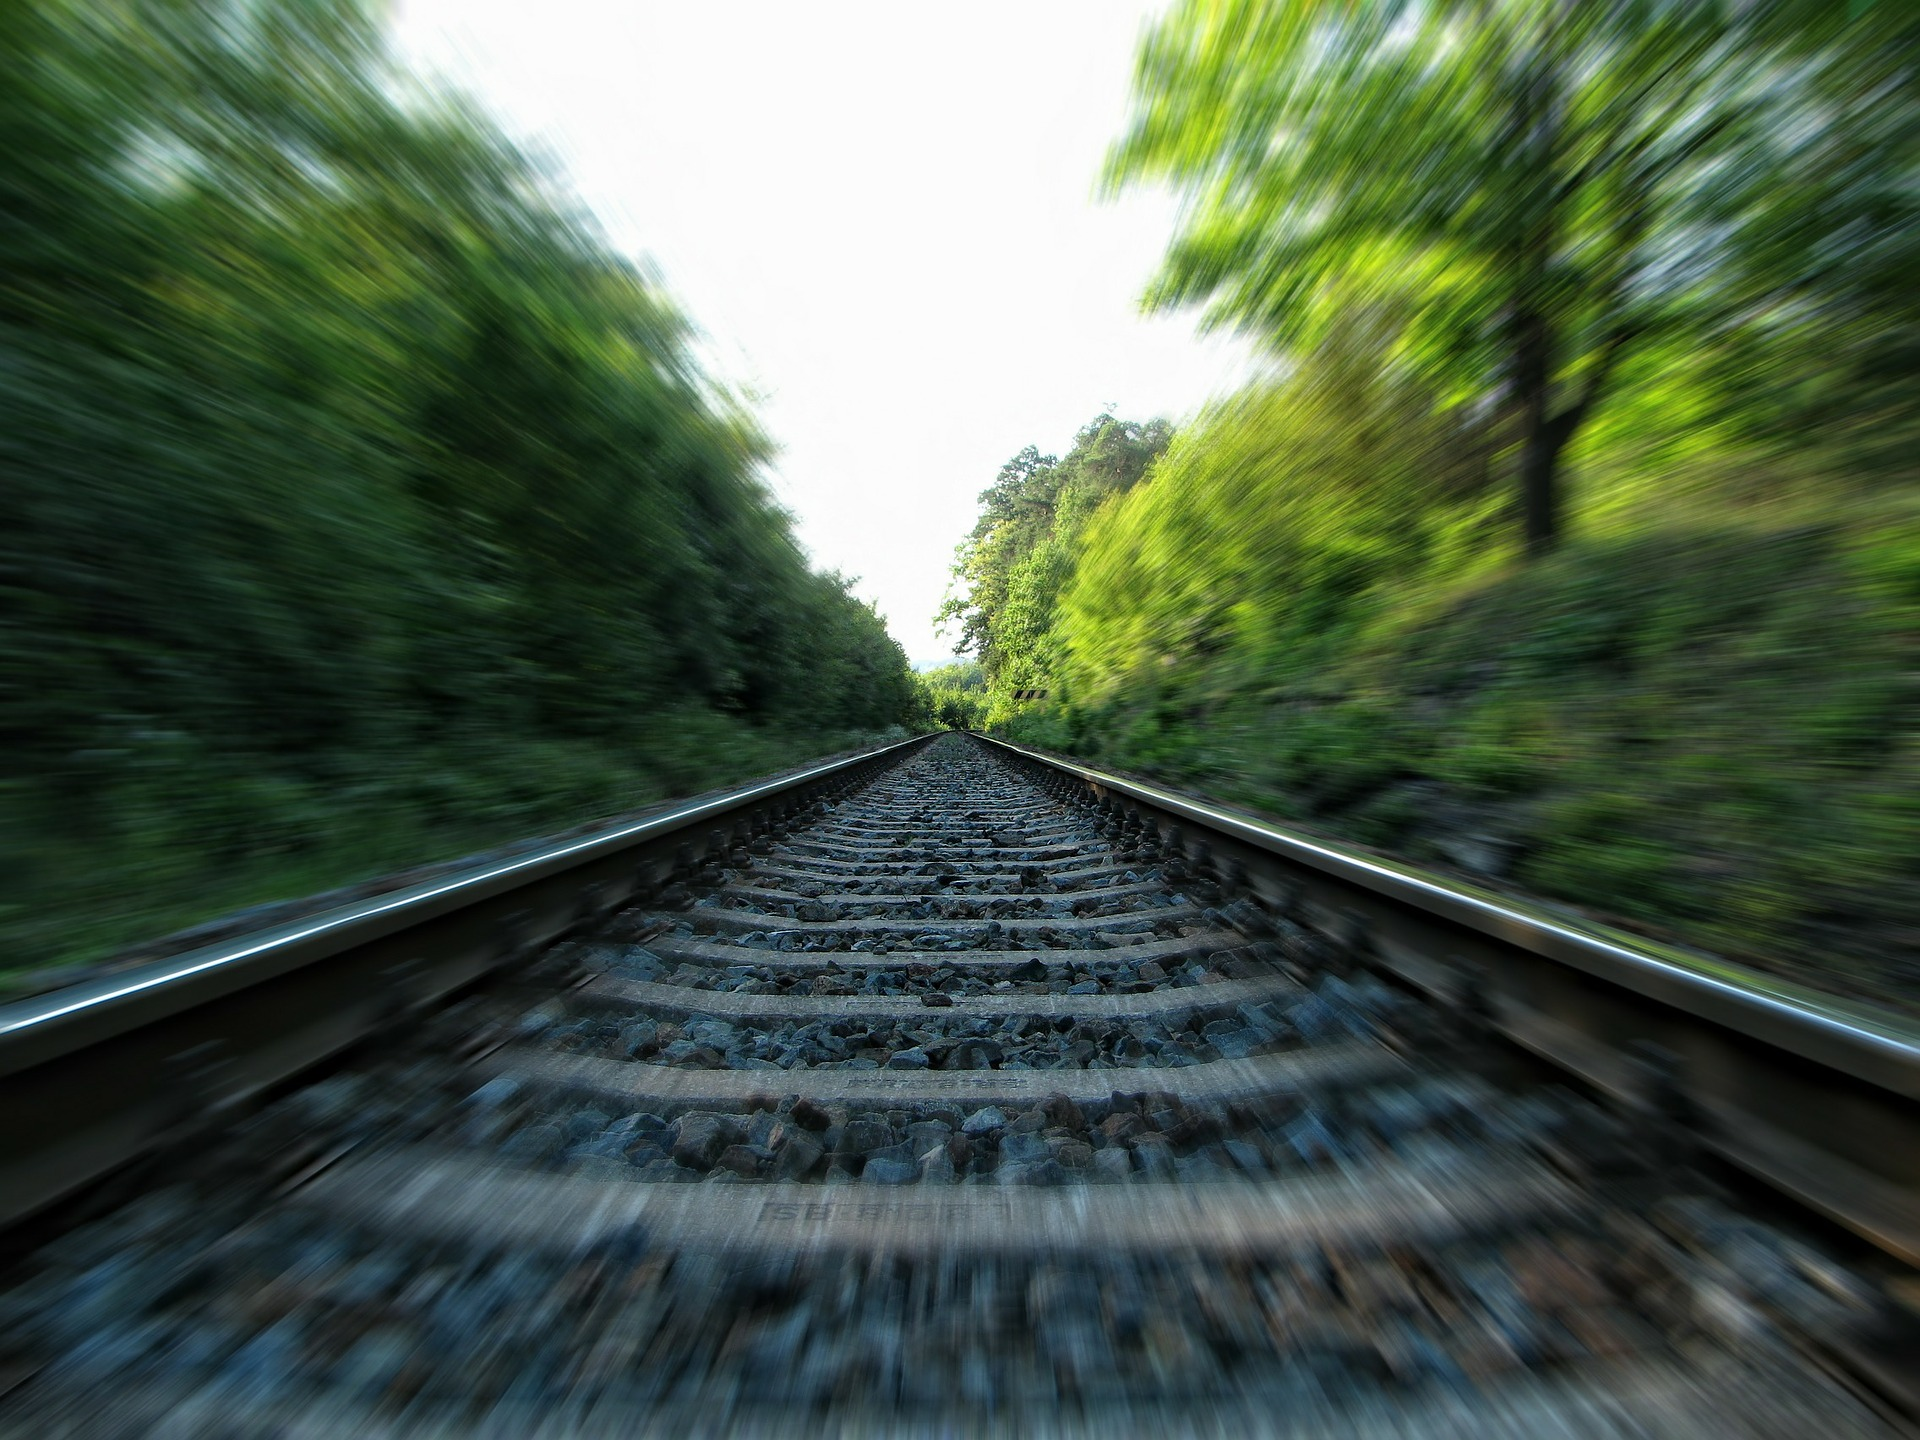 GAIN CLARITY.GET MOMENTUM. - Has your church leadership gone off the rails? Join leadership coach Tommy Bowman for a FREE 30-minute webinar to get back on track.